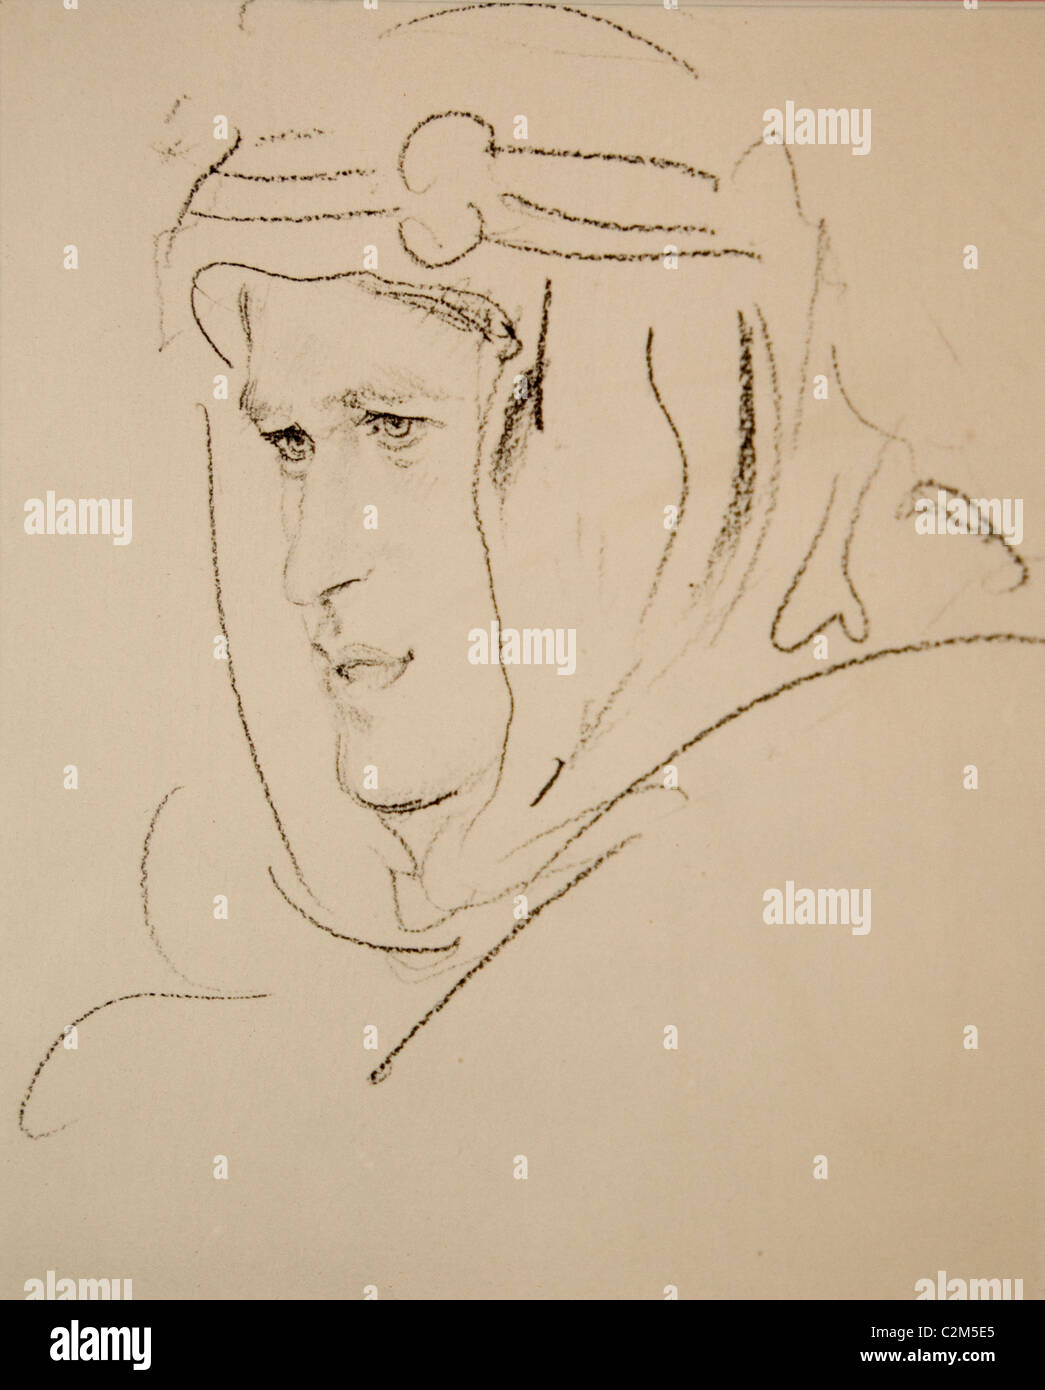 Lawrence of Arabia Lieutenant Colonel Thomas Edward Lawrence  T. E. Lawrence British Army officer painting drawing - Stock Image